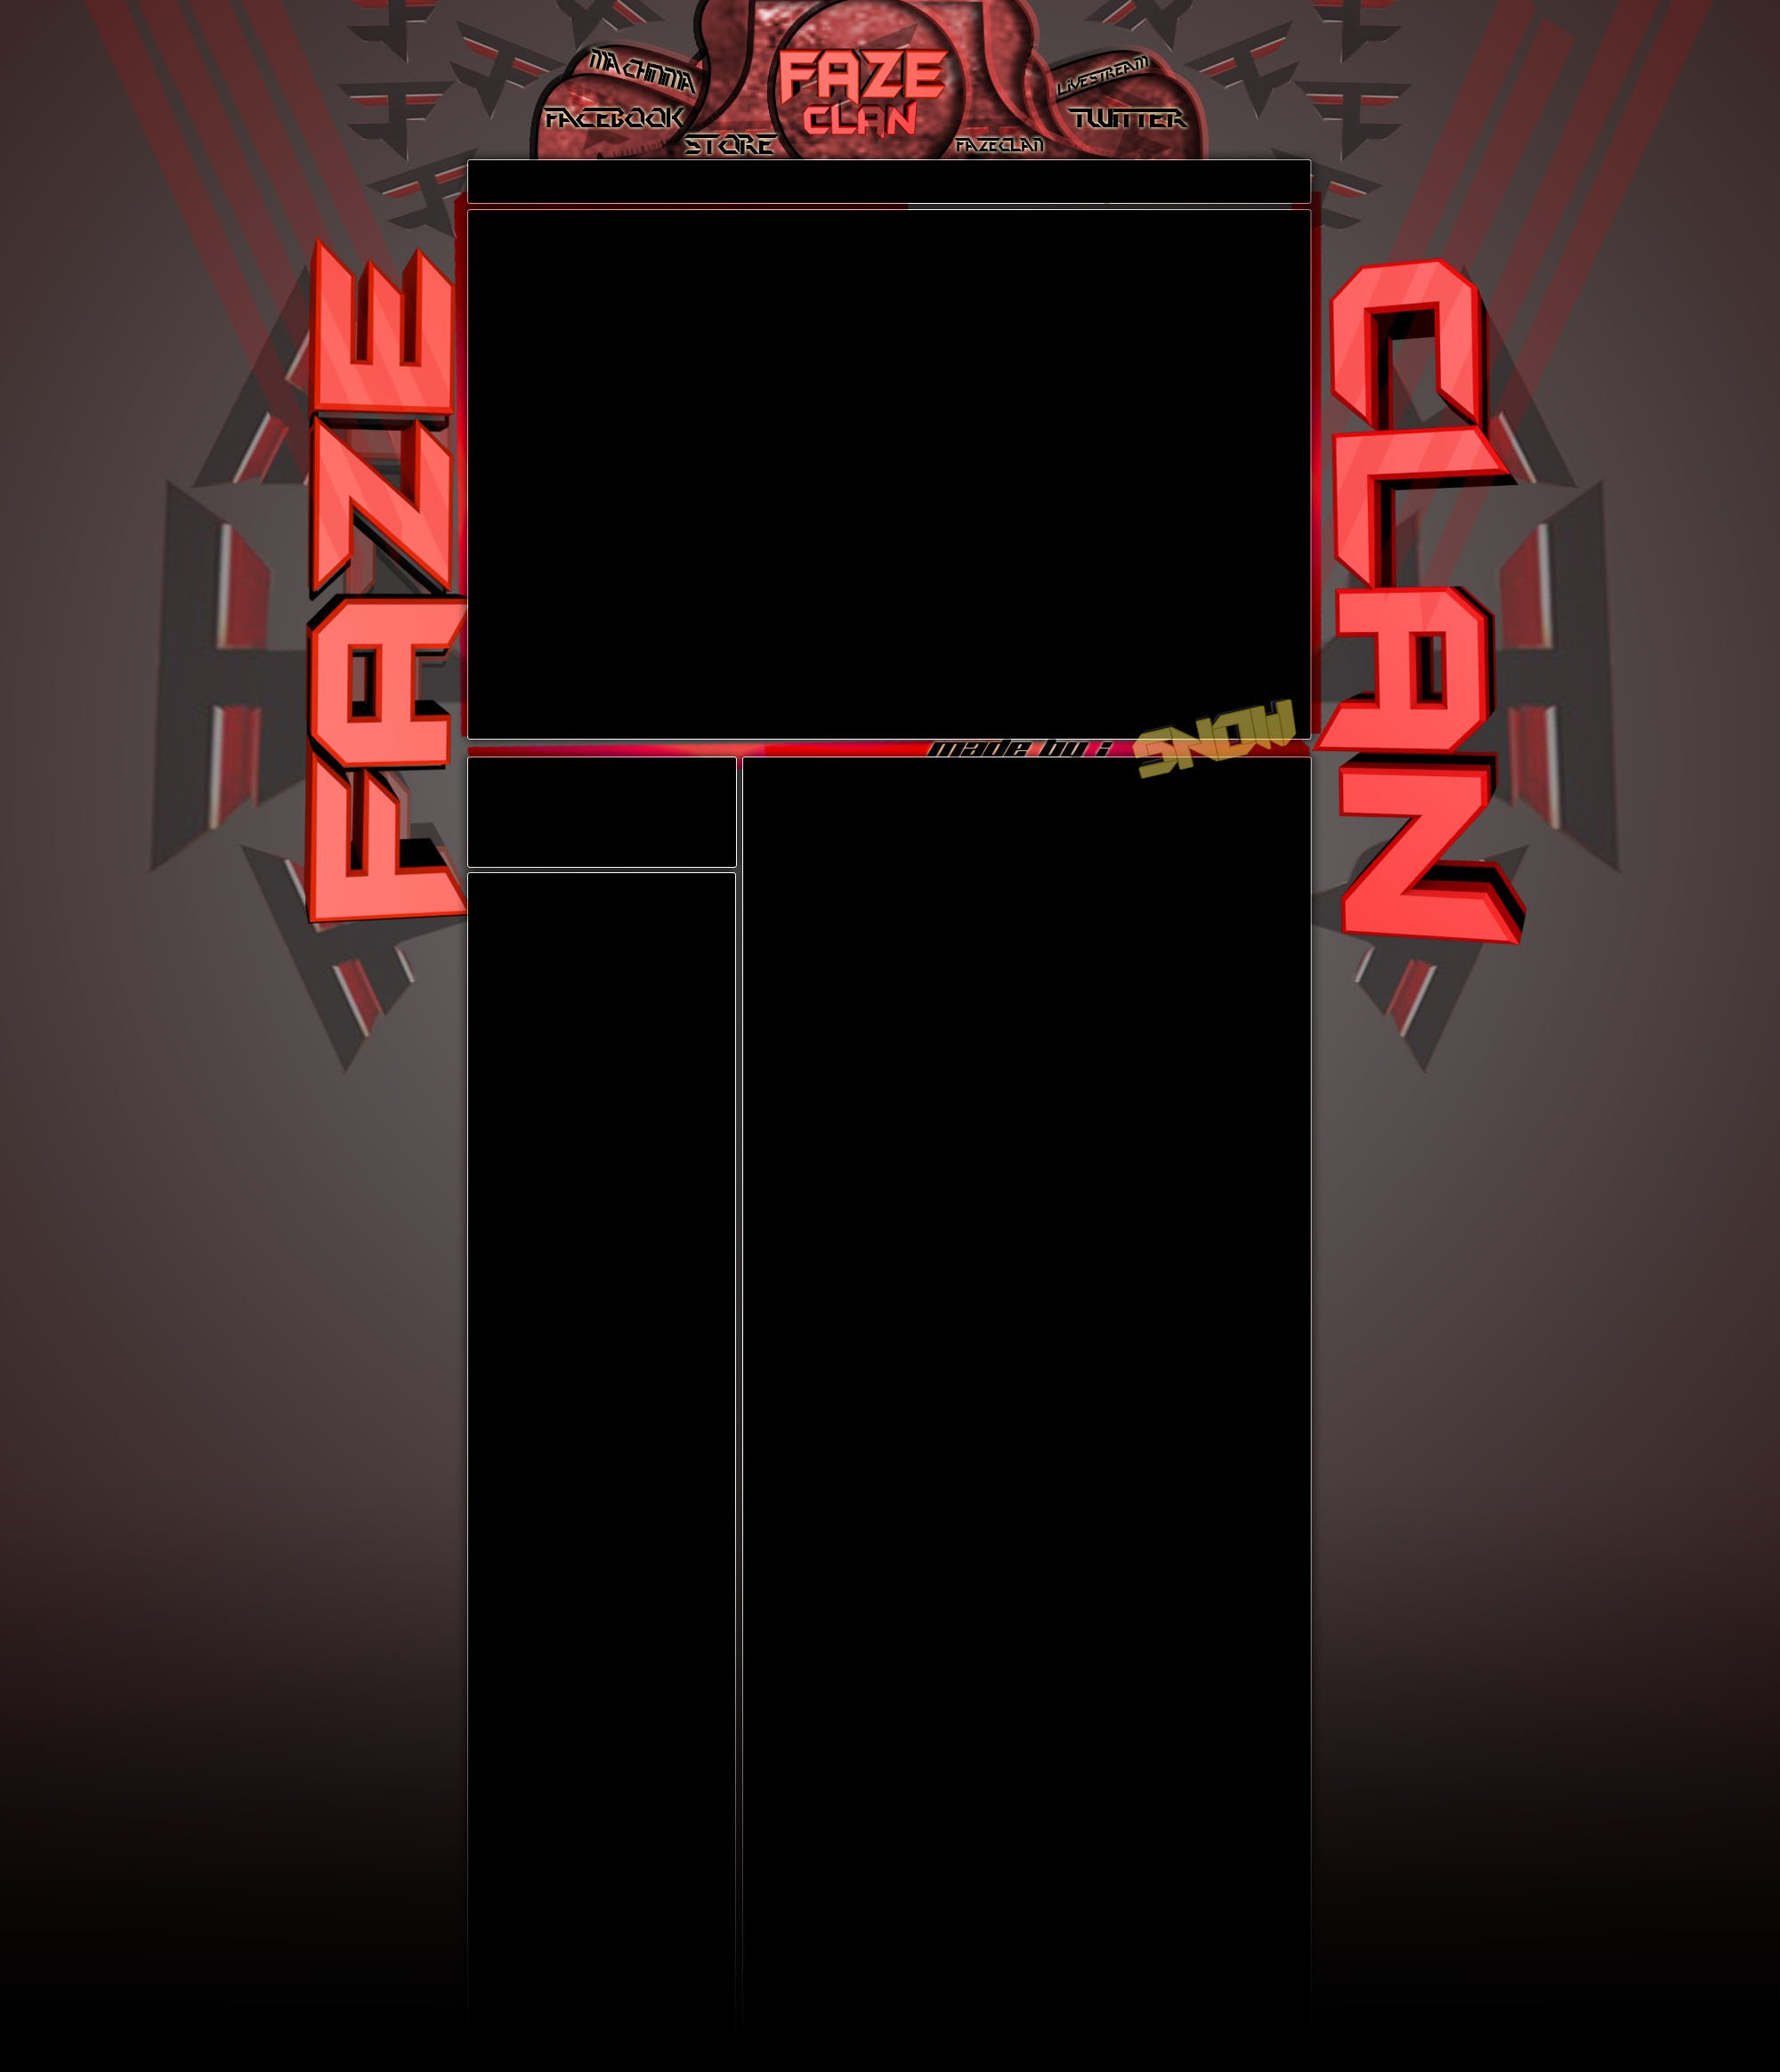 FaZe Background Made by Matthew Moen 2000x2328